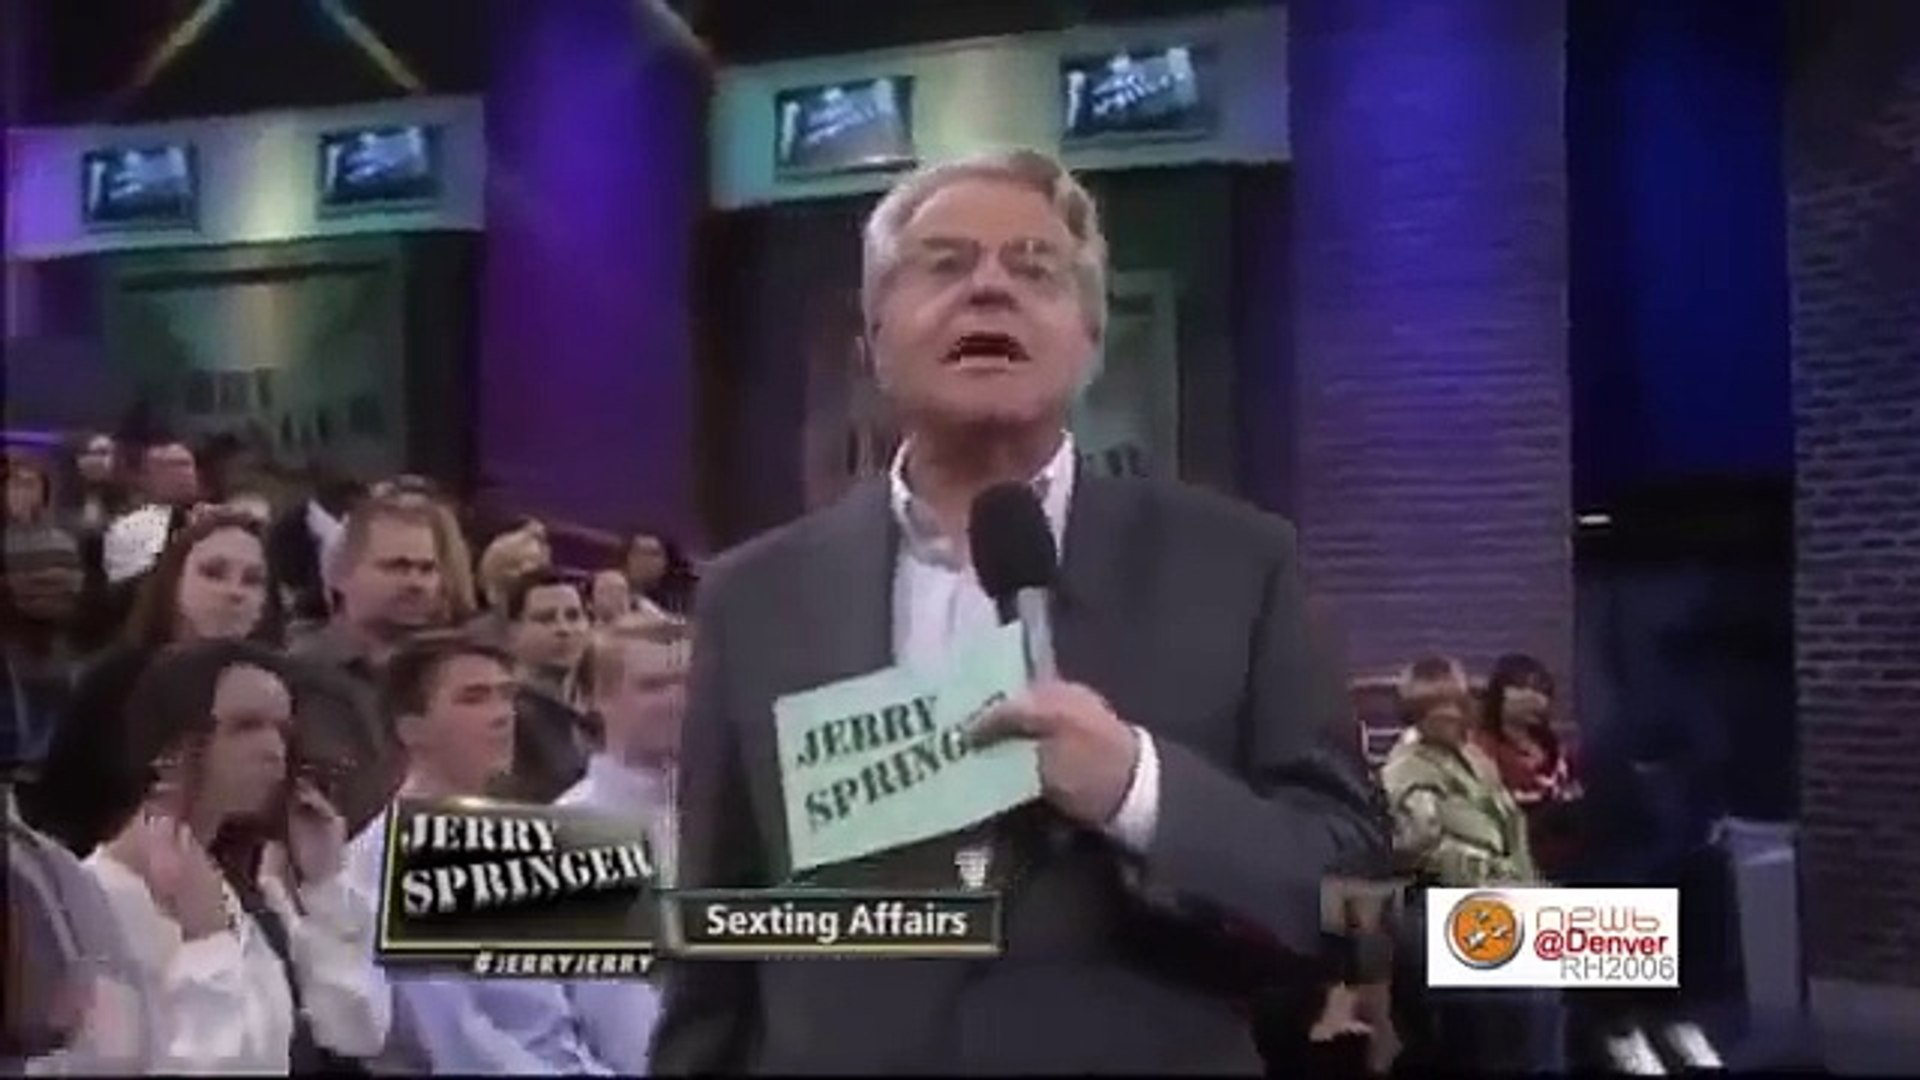 The Jerry Springer Show - Sexting Affairs